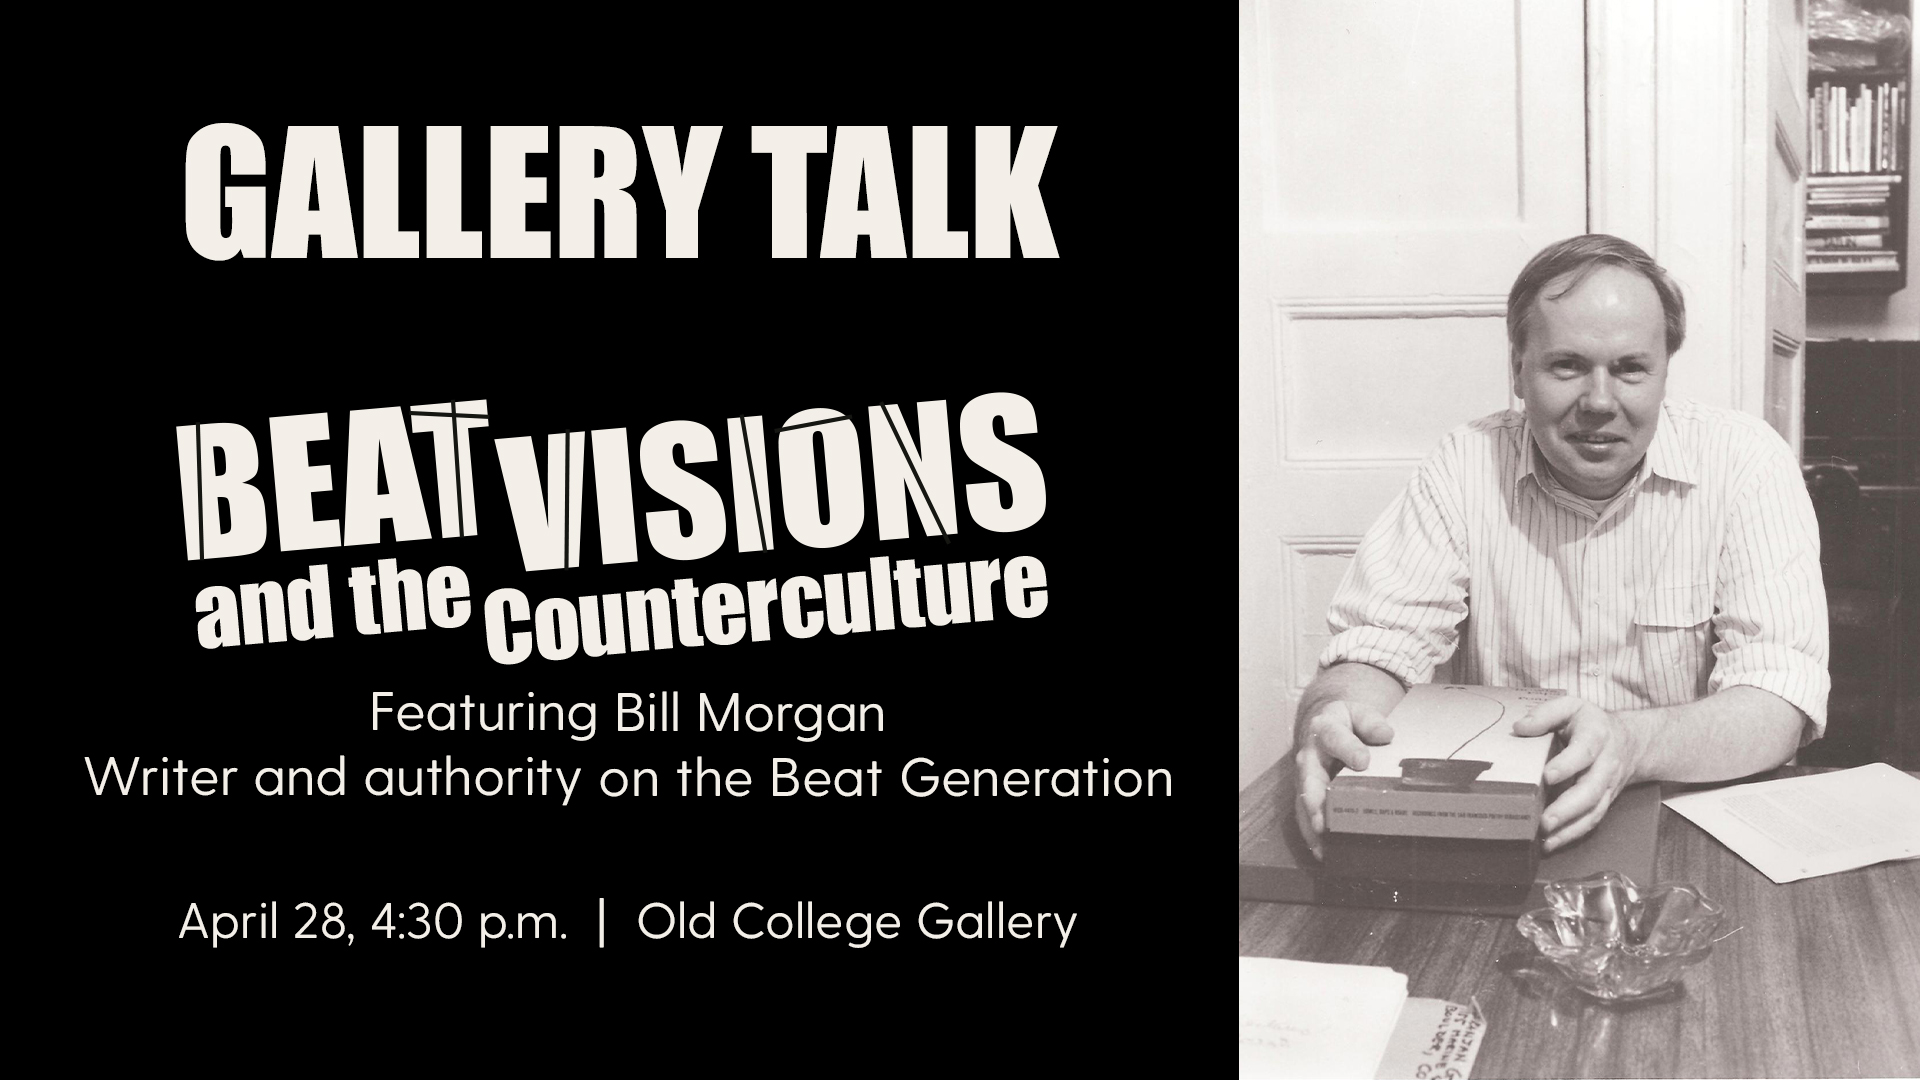 Promotional image for the Gallery Talk on